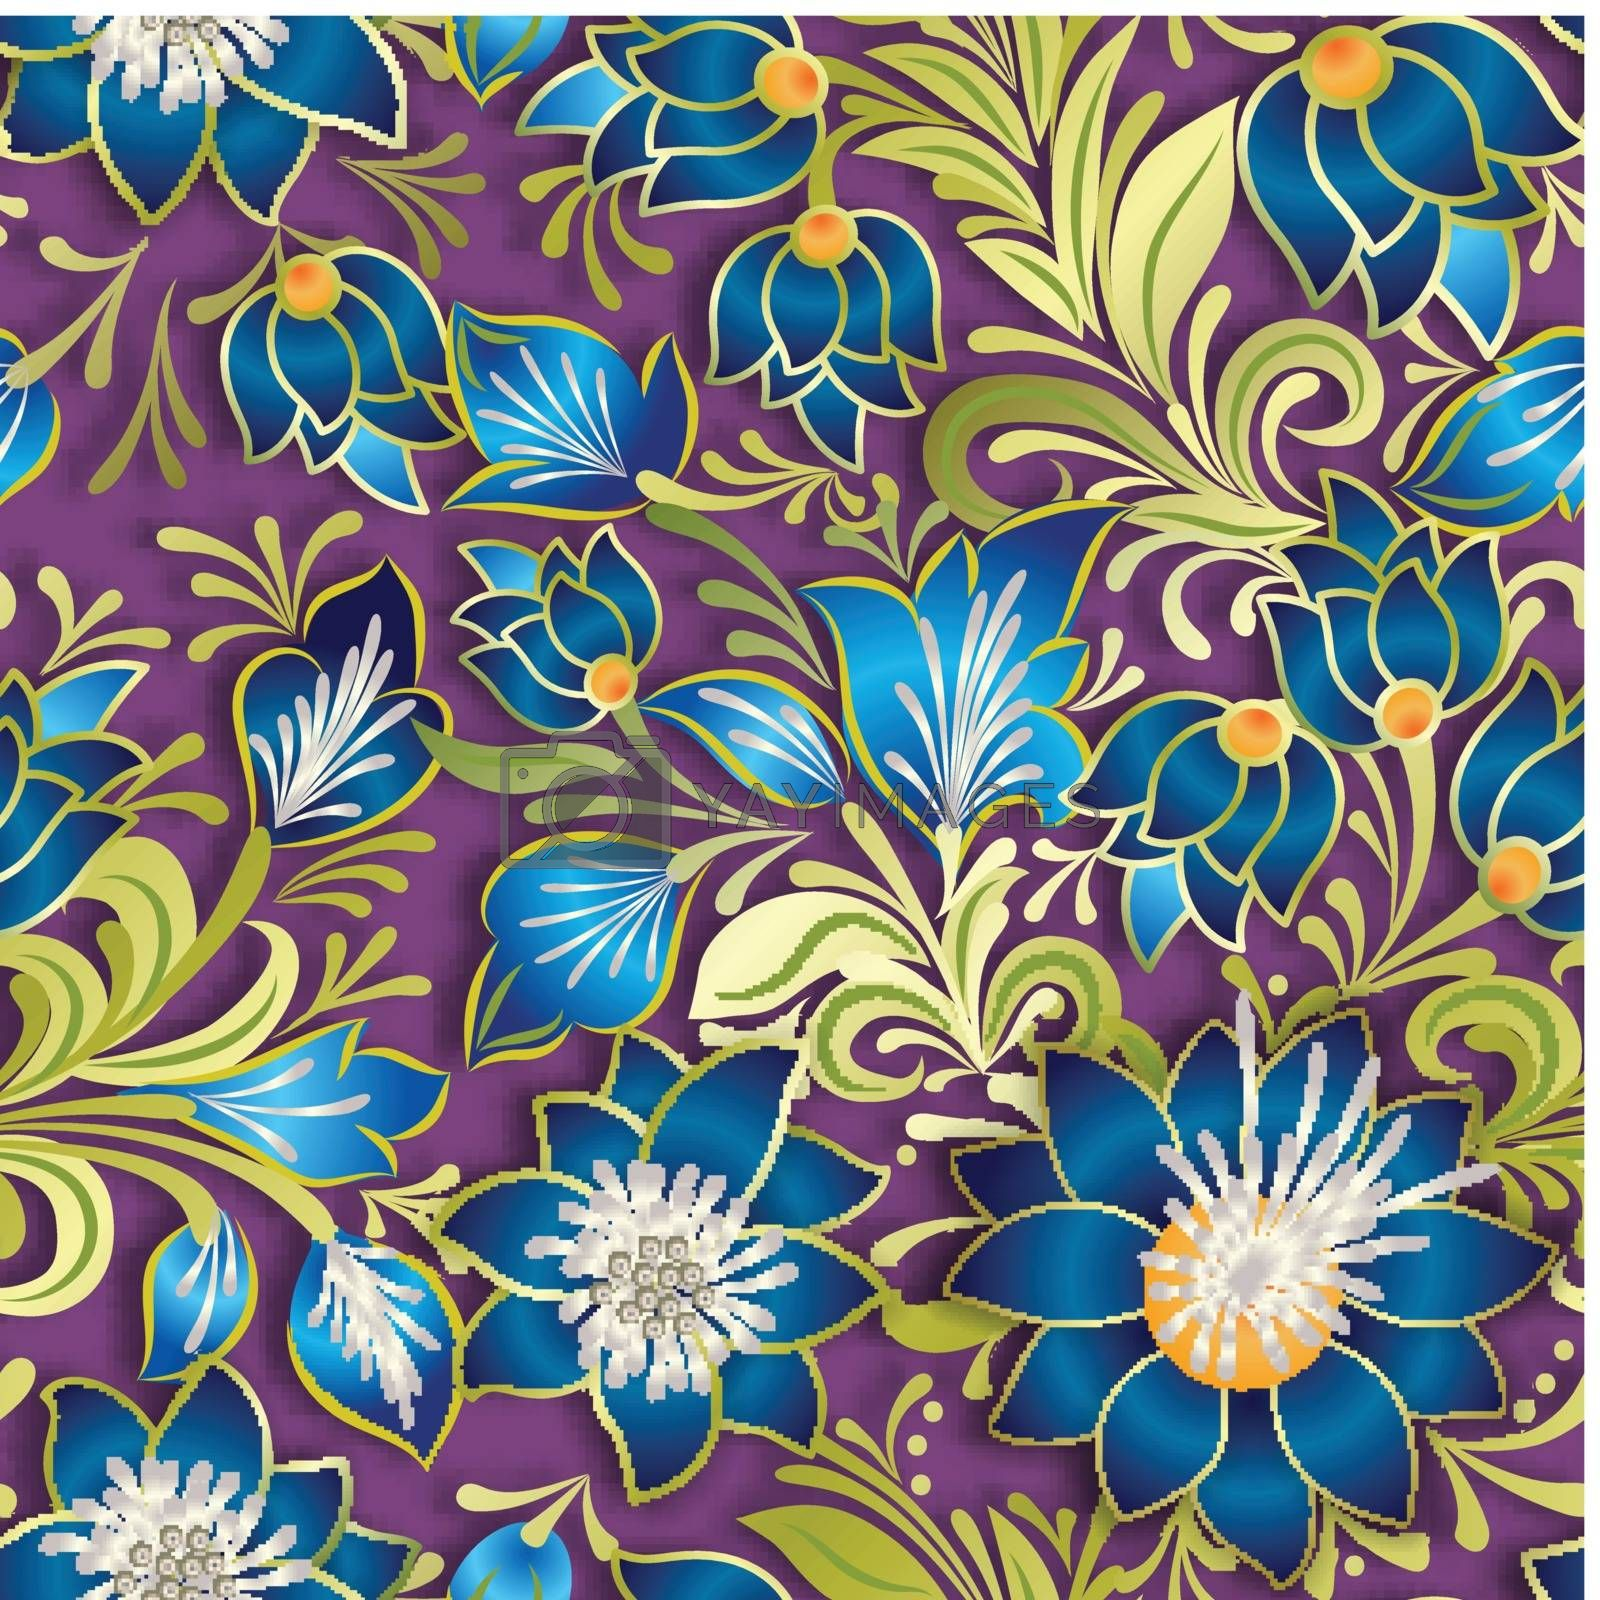 abstract vintage seamless floral ornament by lem